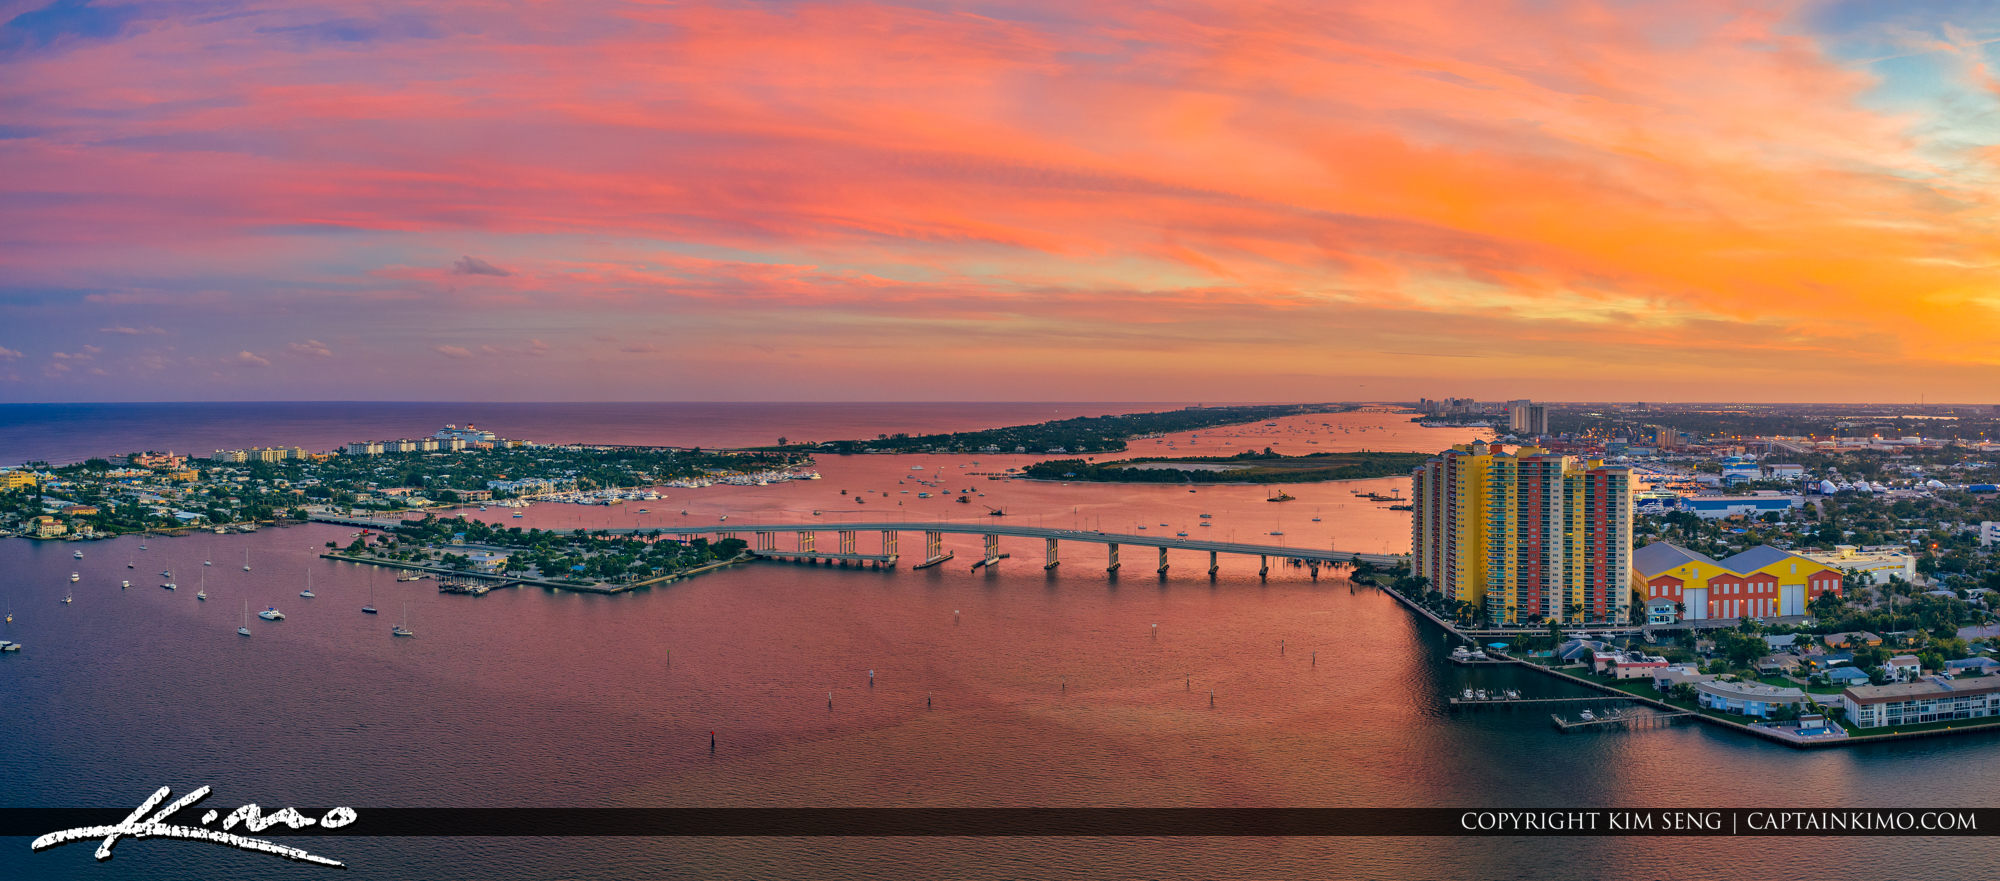 Singer Island Sunset Aerial Photo Panorama Blue Heron Bridge